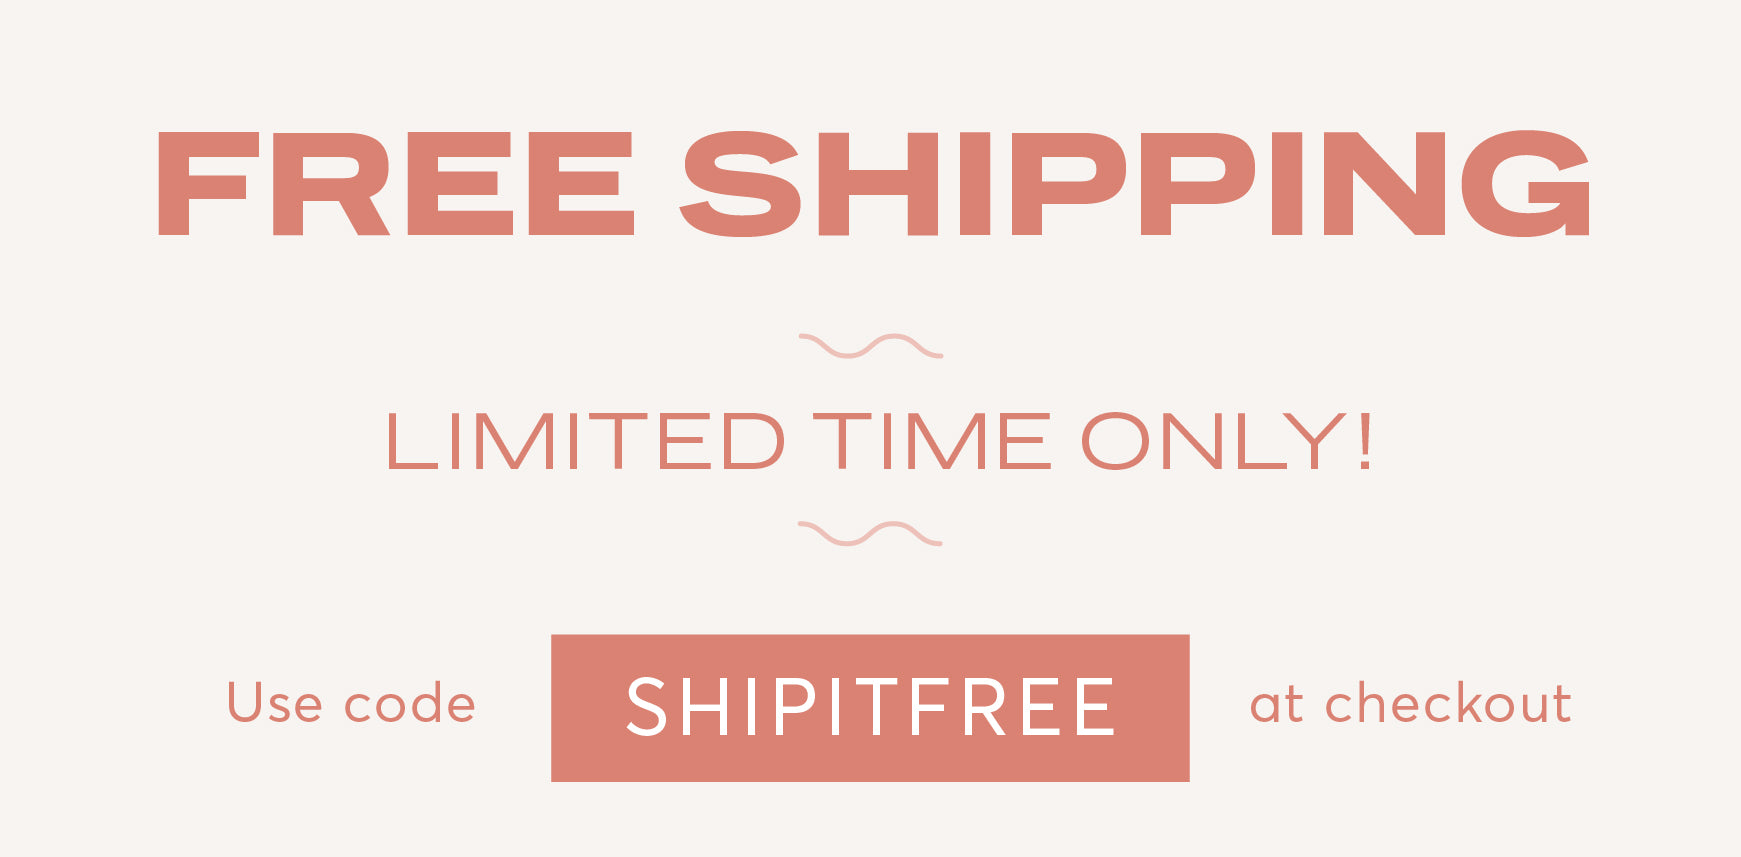 Free Shipping Limited Time Only Use code SHIPITFREE